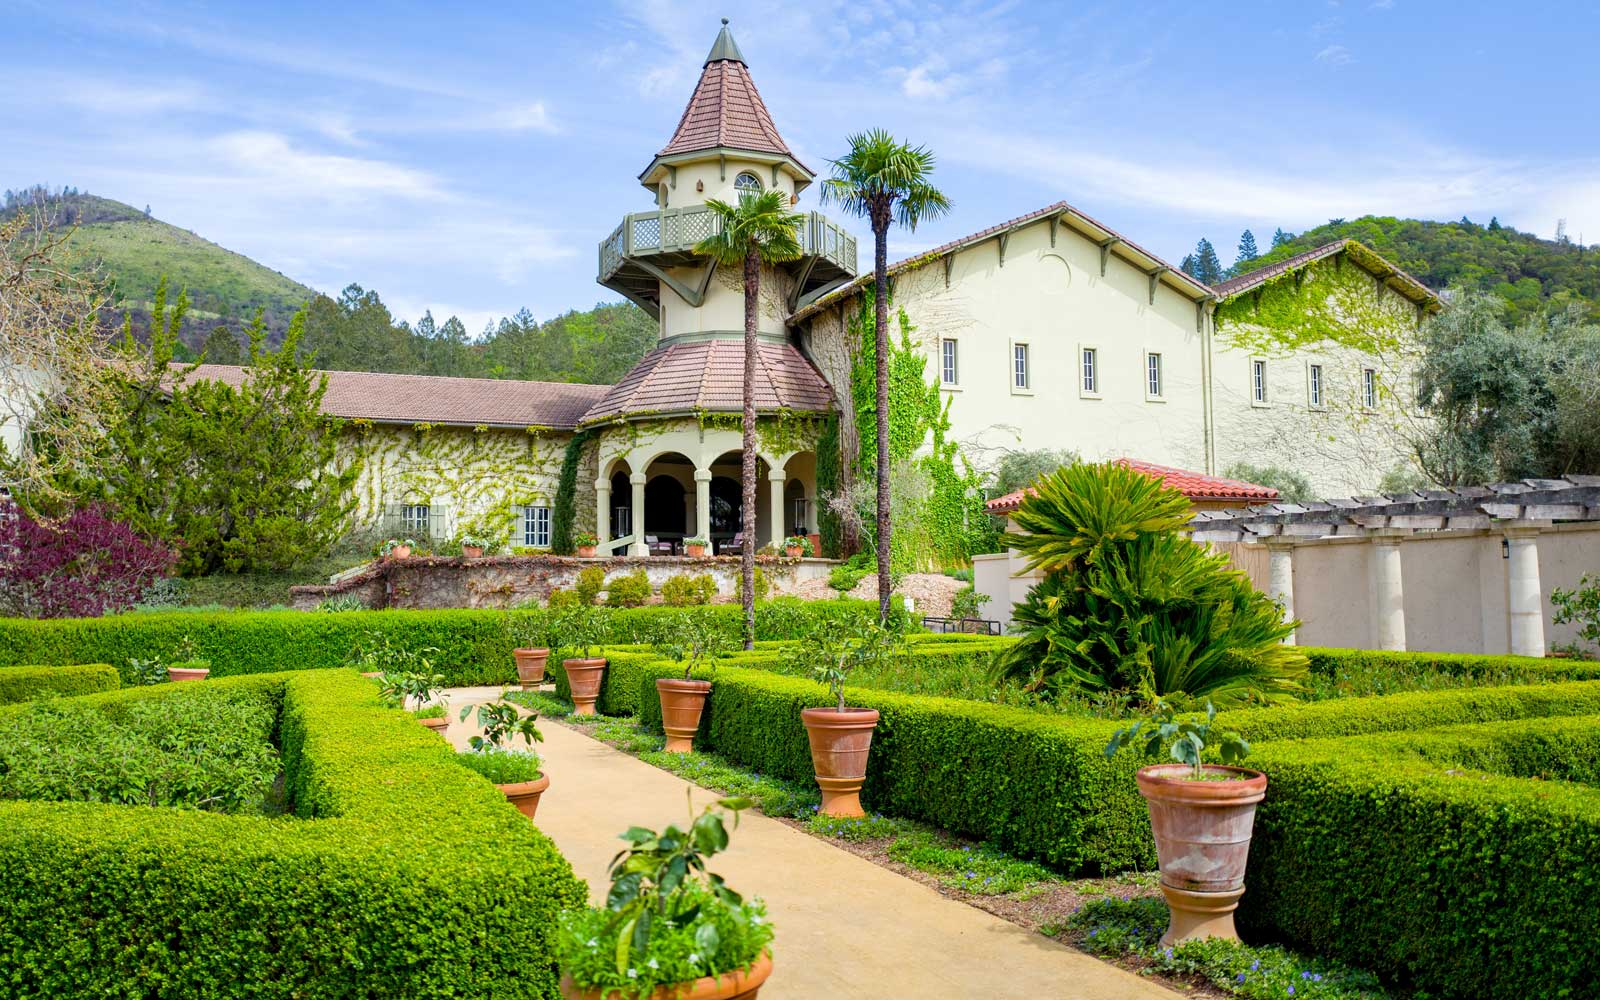 Formal gardens and architecture at Chateau St Jean vineyard in Sonoma County, Kenwood, California